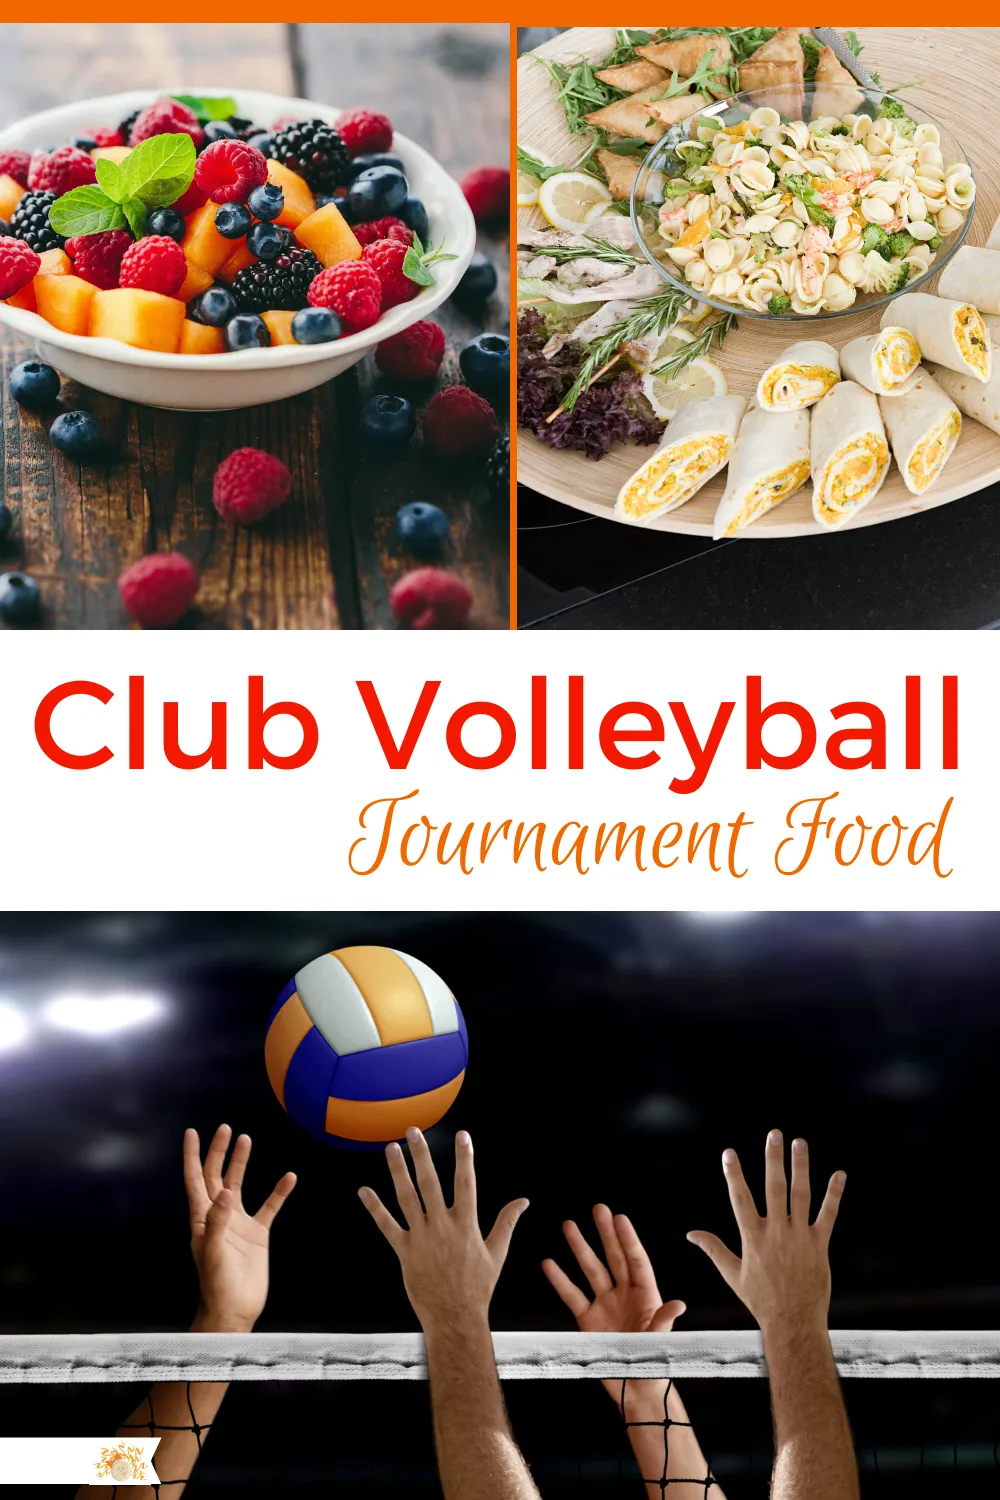 Club Volleyball Tournament Food Crazyredheadlife Com In 2020 Tournament Food Volleyball Tournaments Volleyball